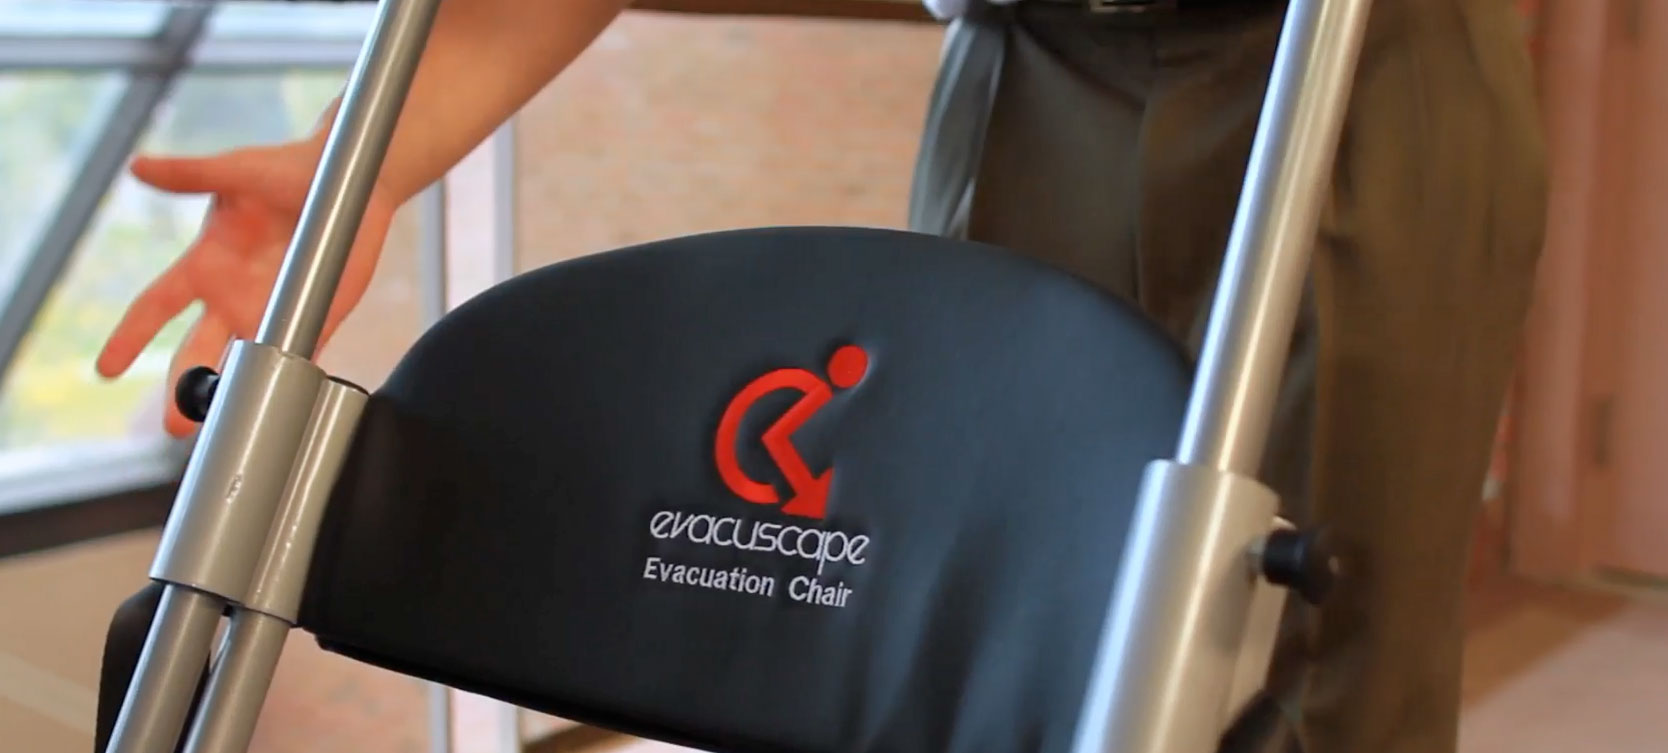 An Evacuation Chair is a Crucial Accessibility Tool